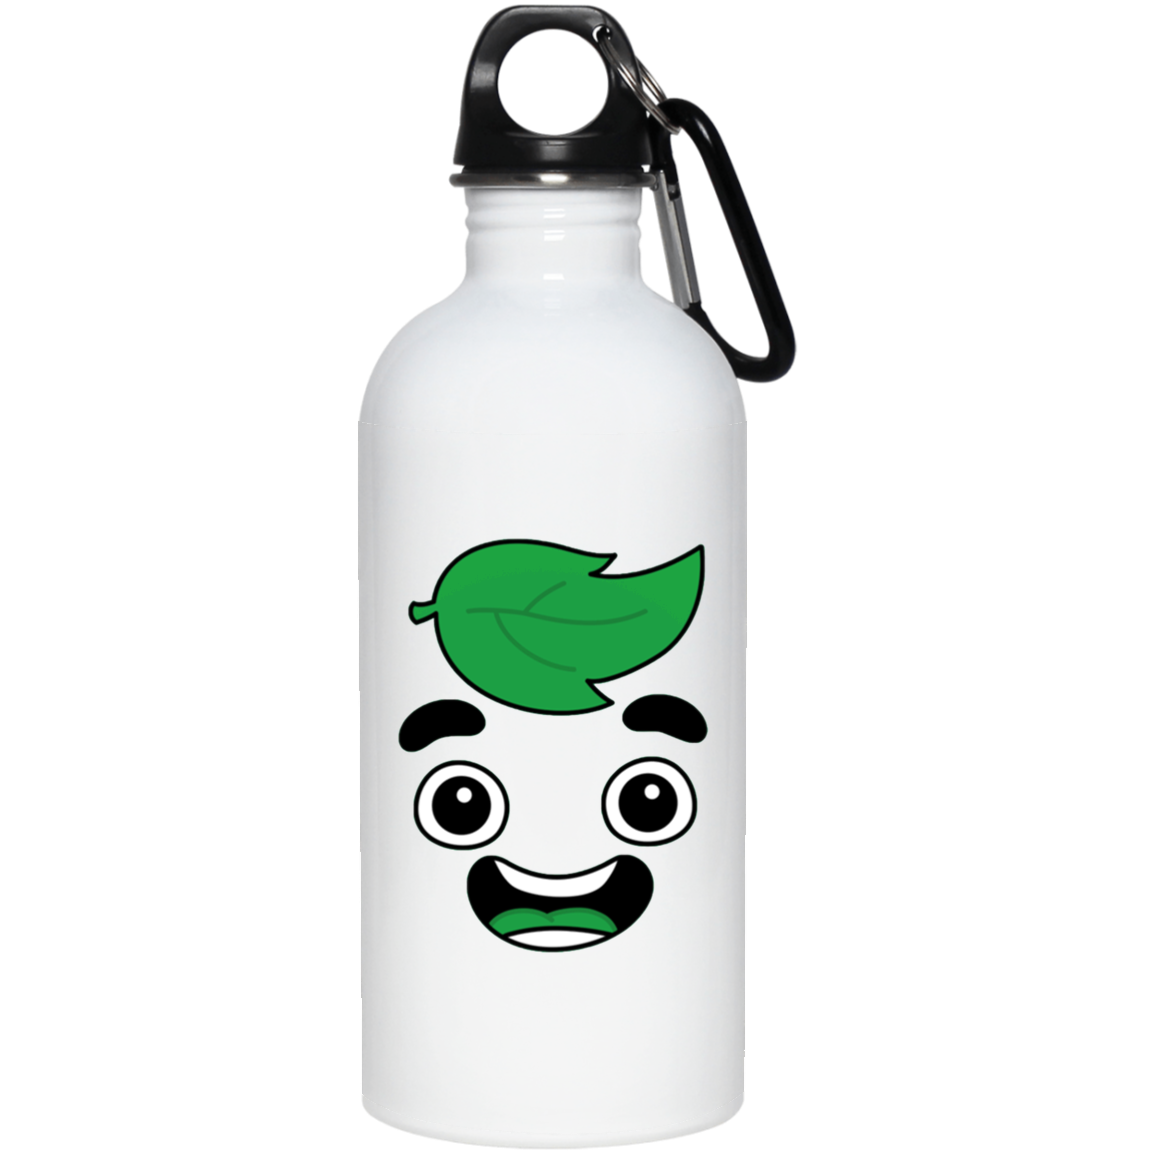 Guava Juice 23663 20 oz. Stainless Steel Water Bottle